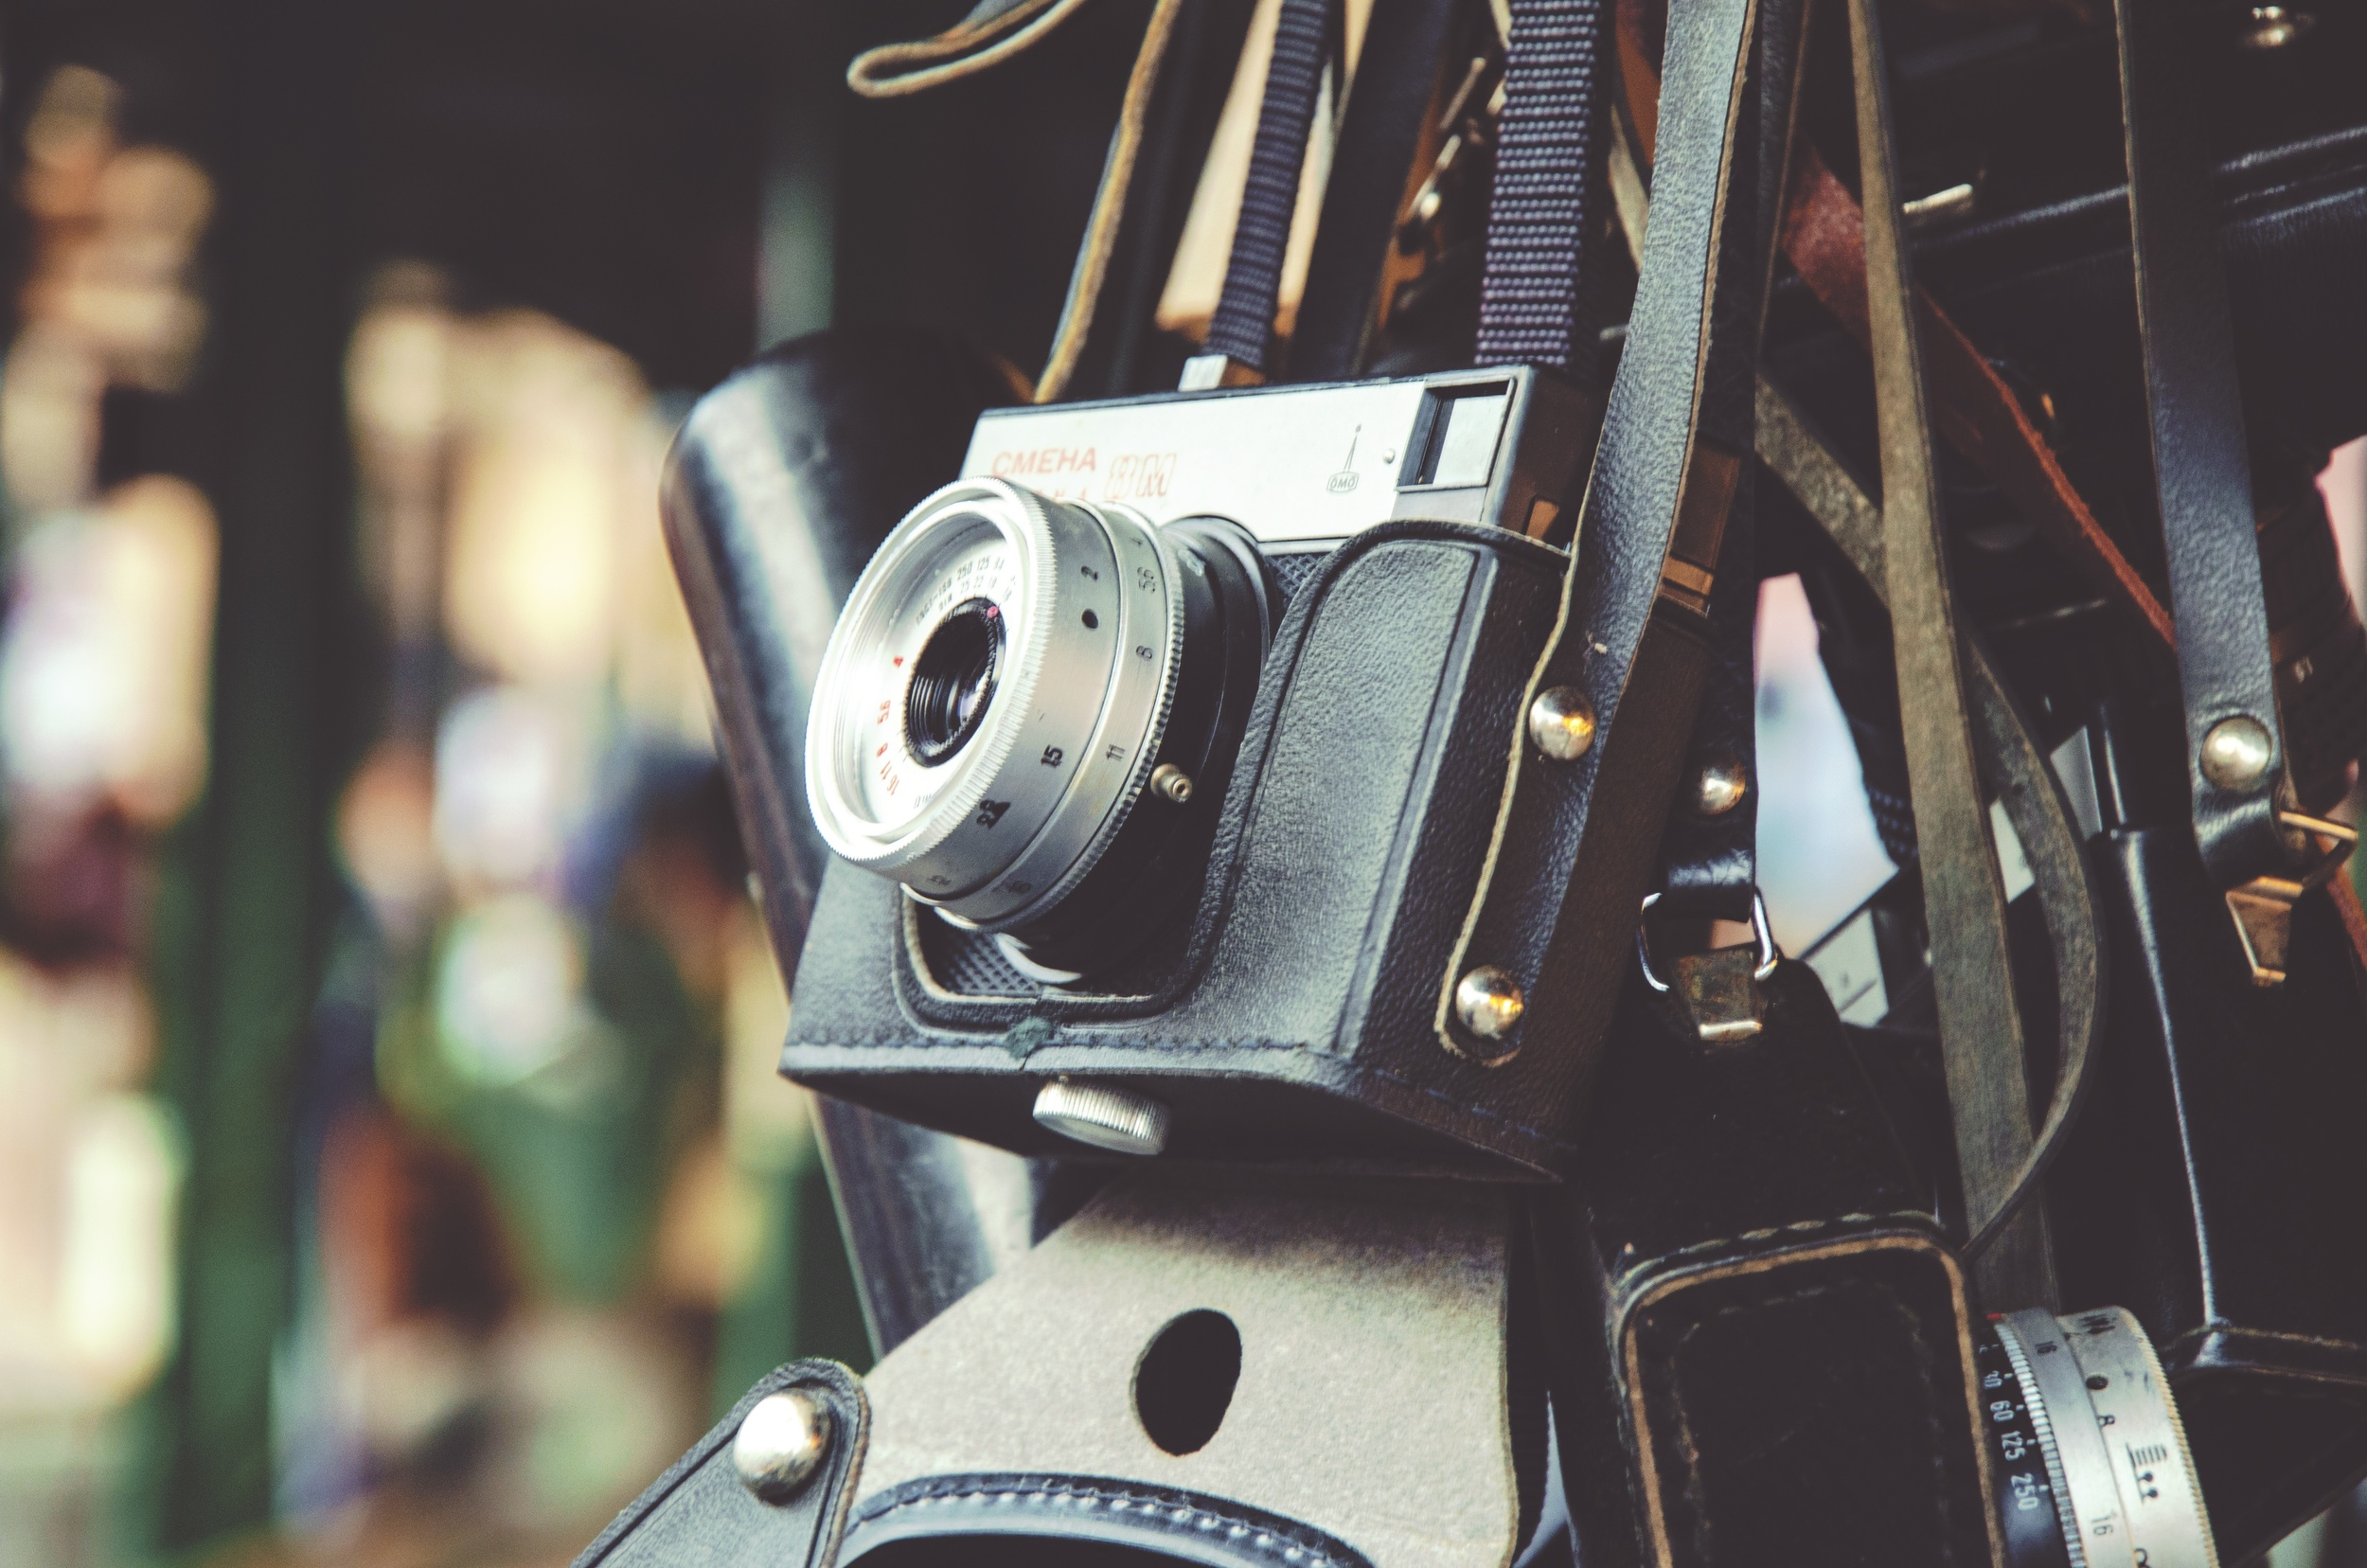 I really need a new camera. Photo from www.unsplash.com